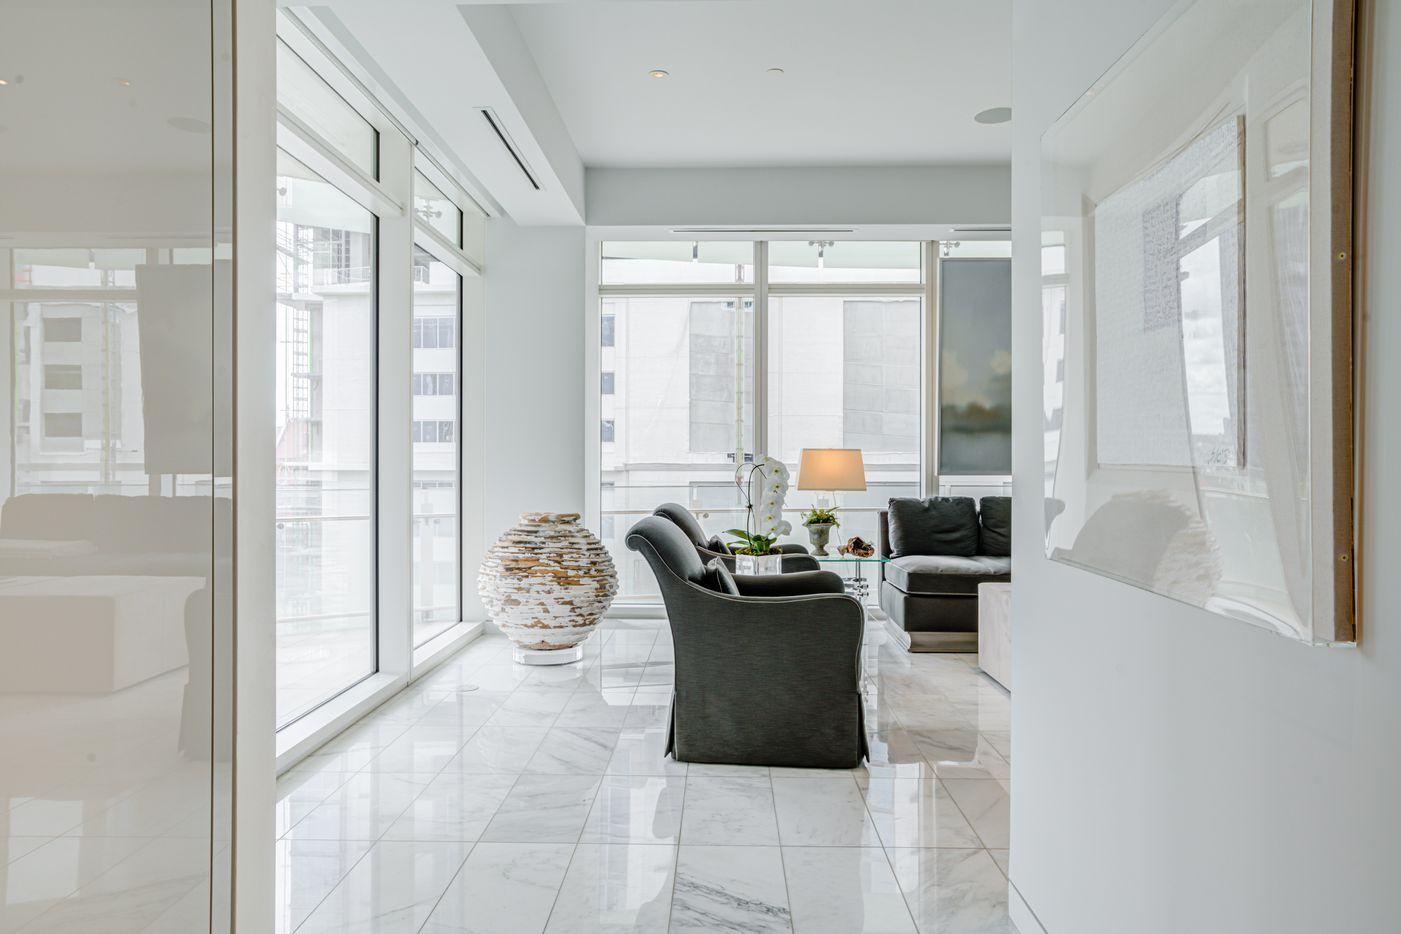 Take a look at the condo inside Museum Tower at 1918 Olive St. Unit 502 in Dallas, TX.